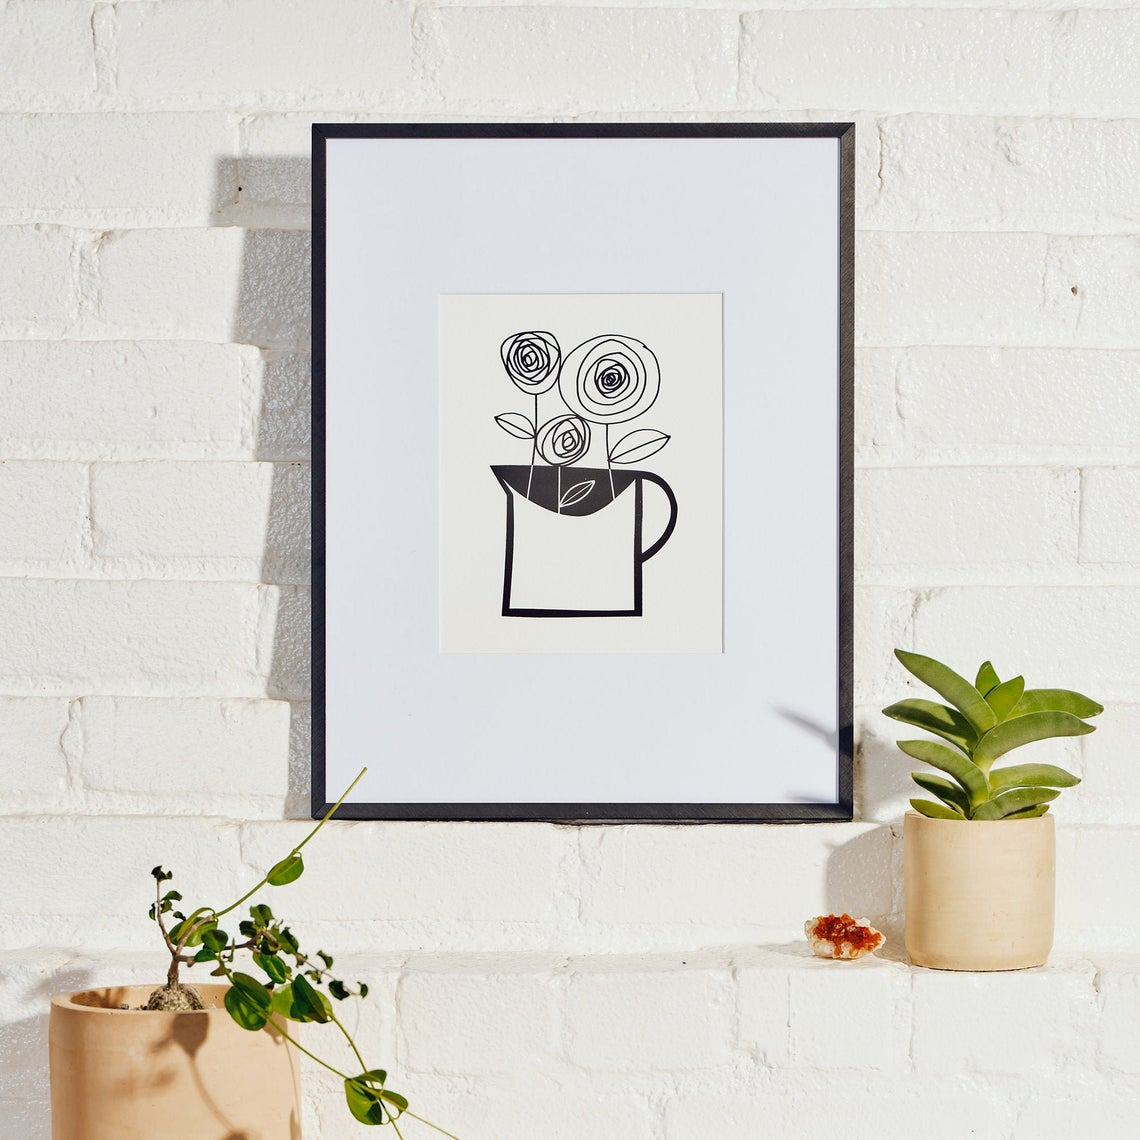 Black and White print of flowers in vase